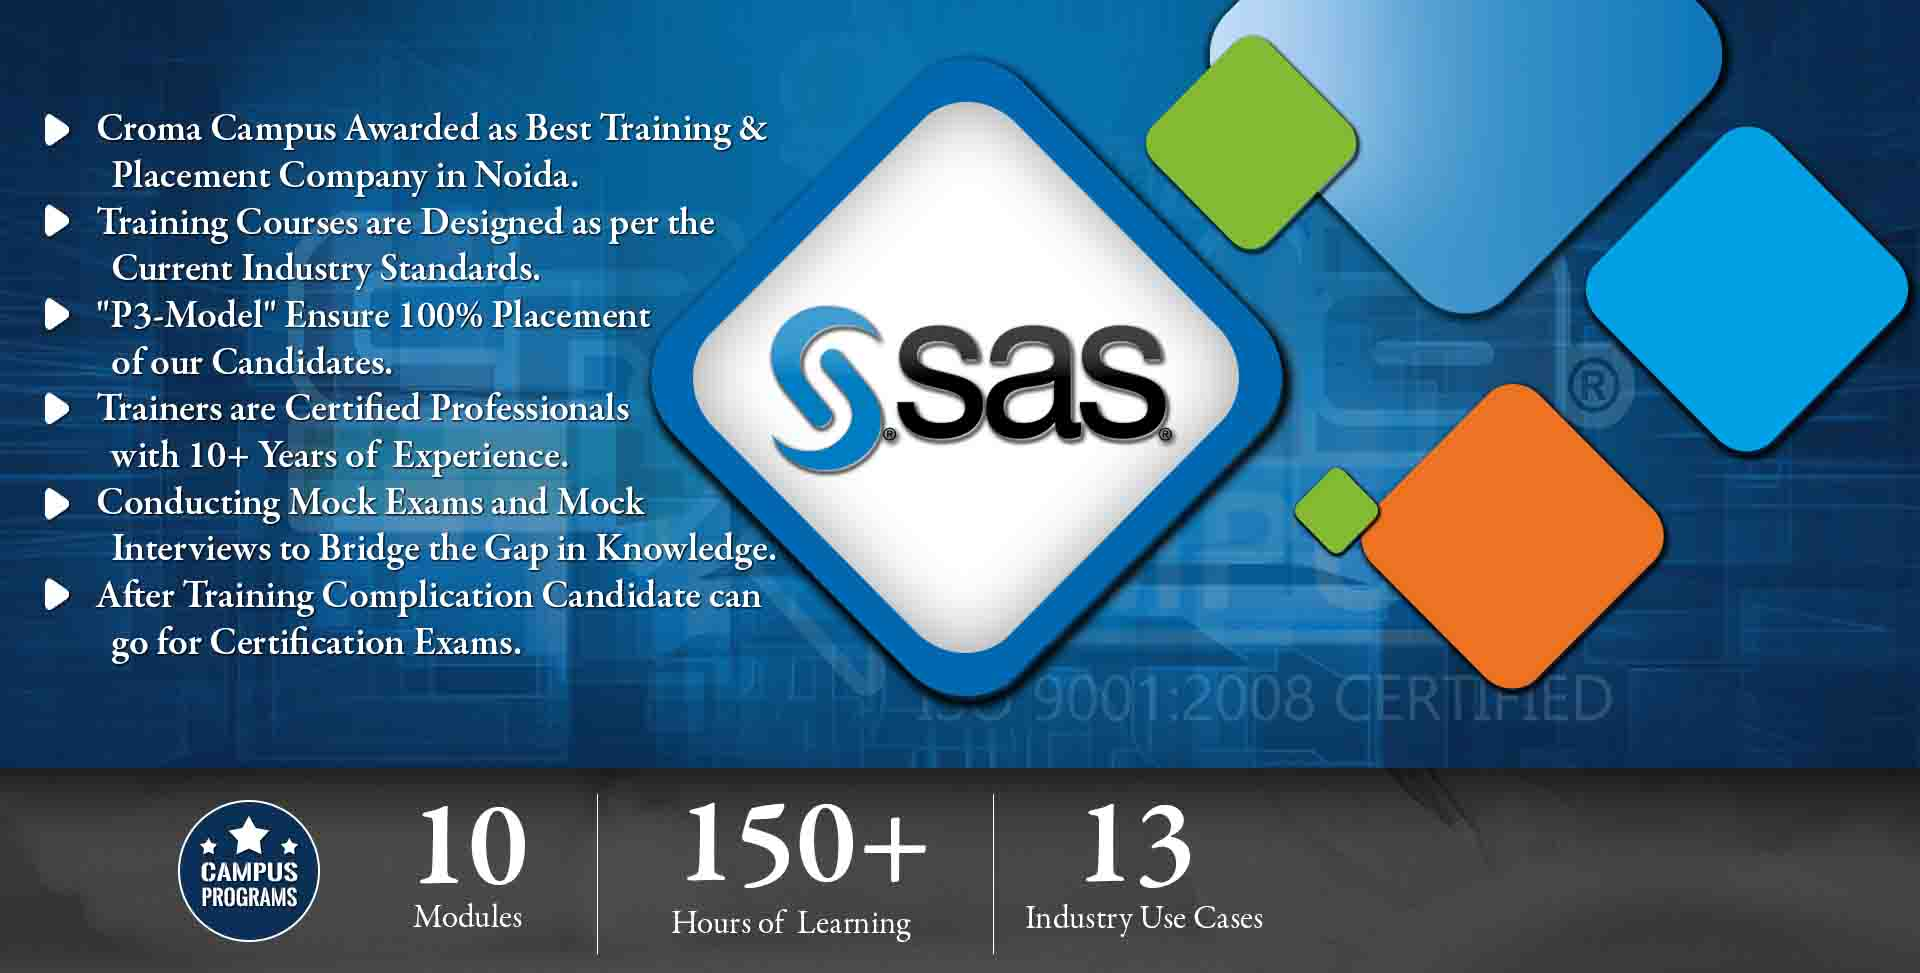 SAS Training in Delhi - Croma Campus